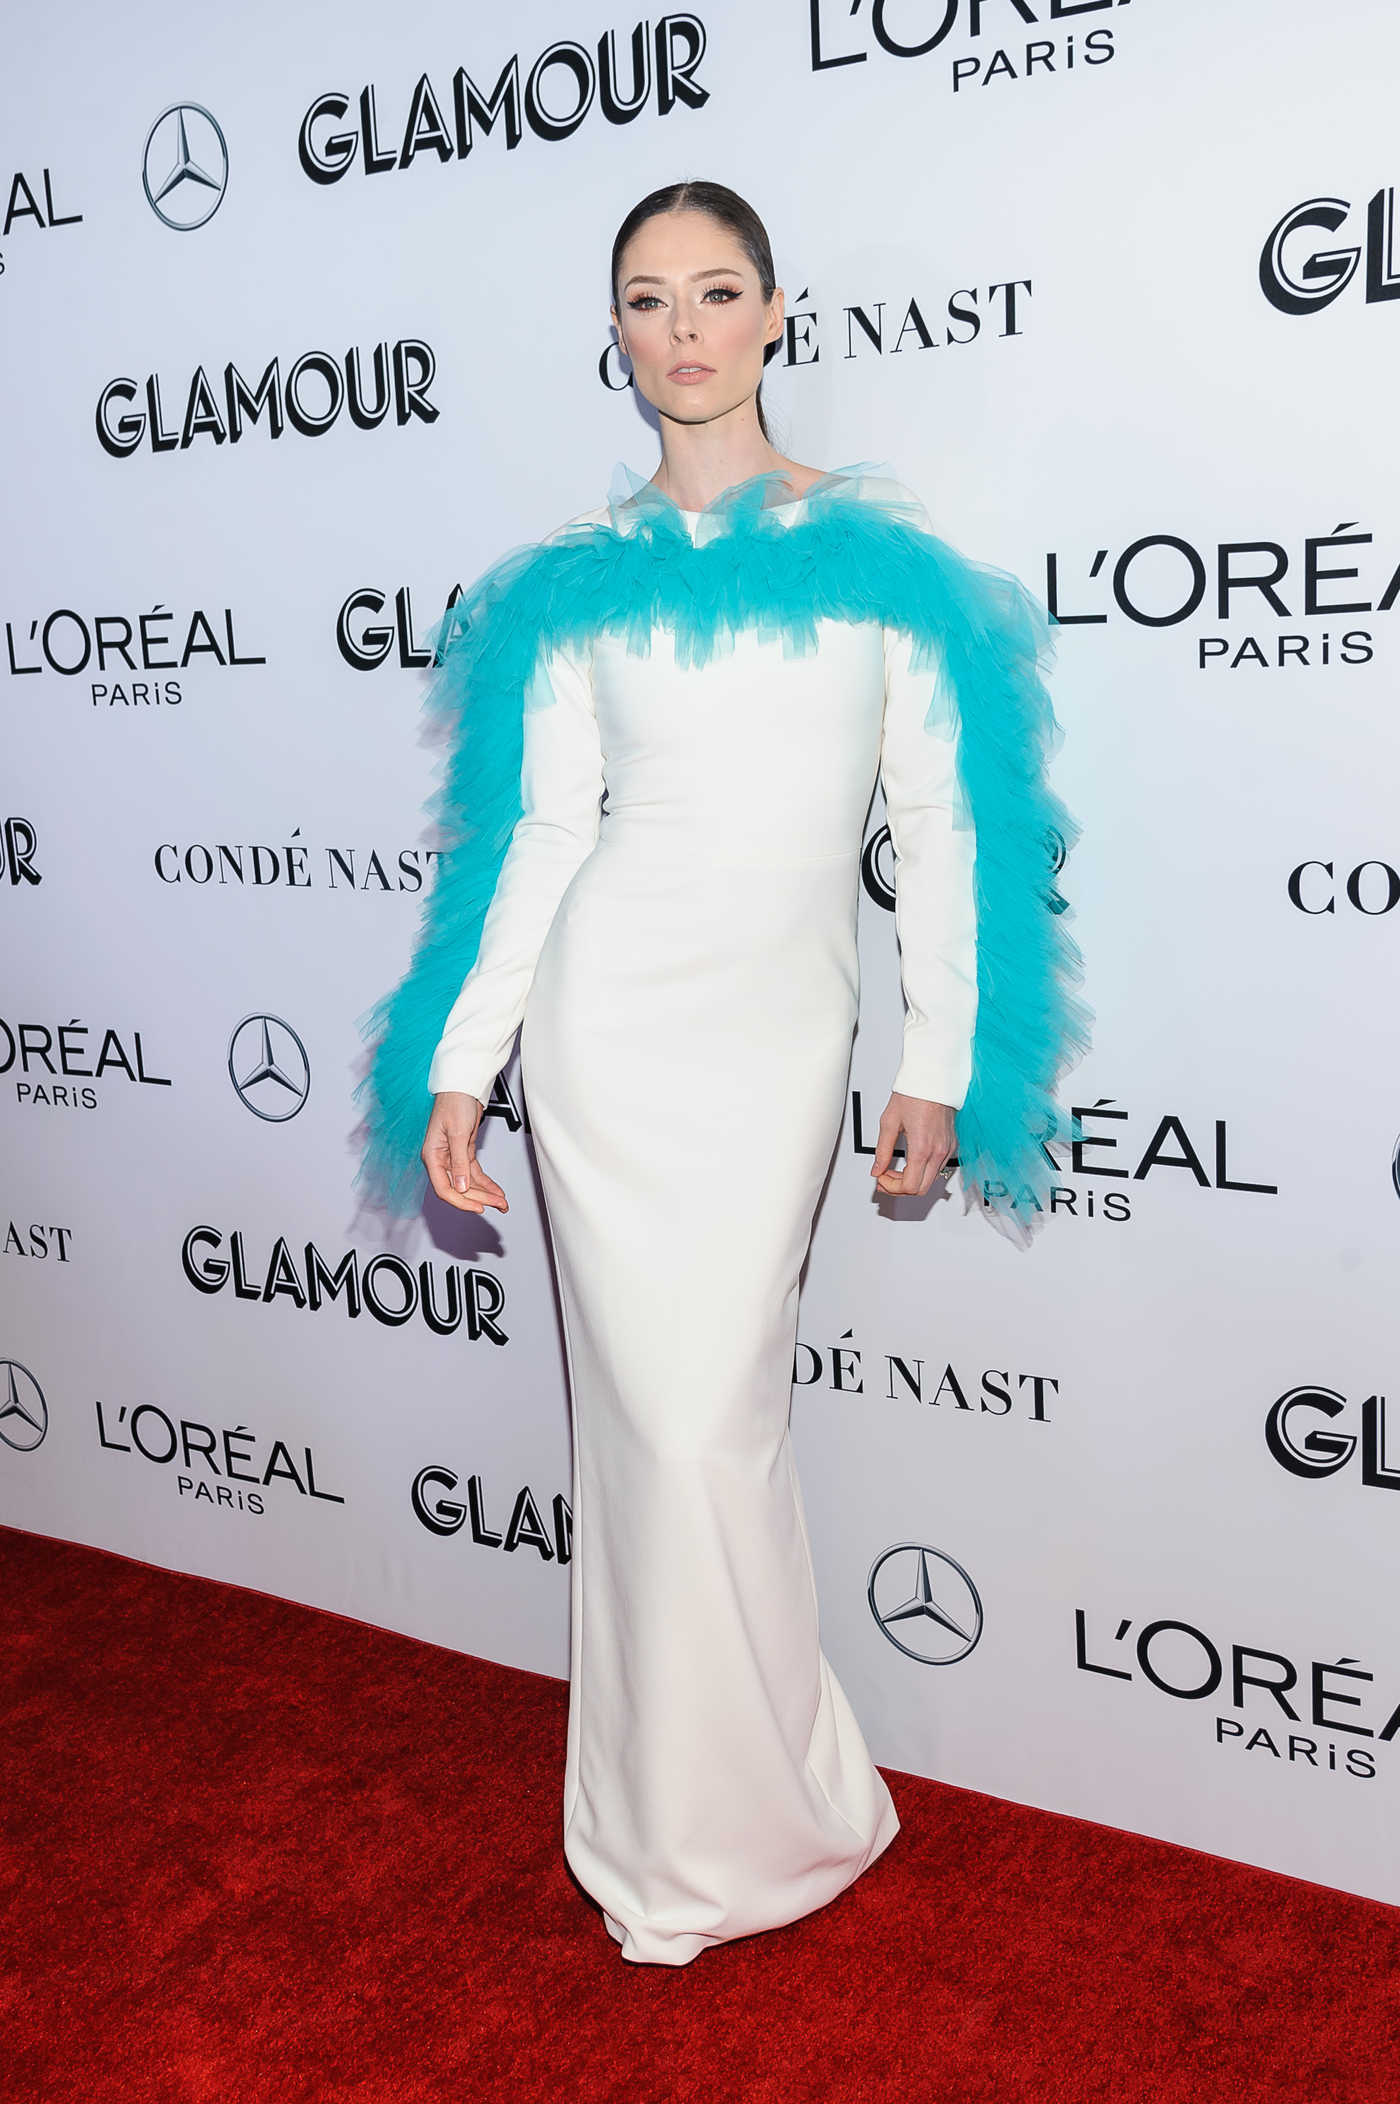 Coco Rocha Attends 2018 Glamour Women of the Year Awards in NYC 11/12/2018